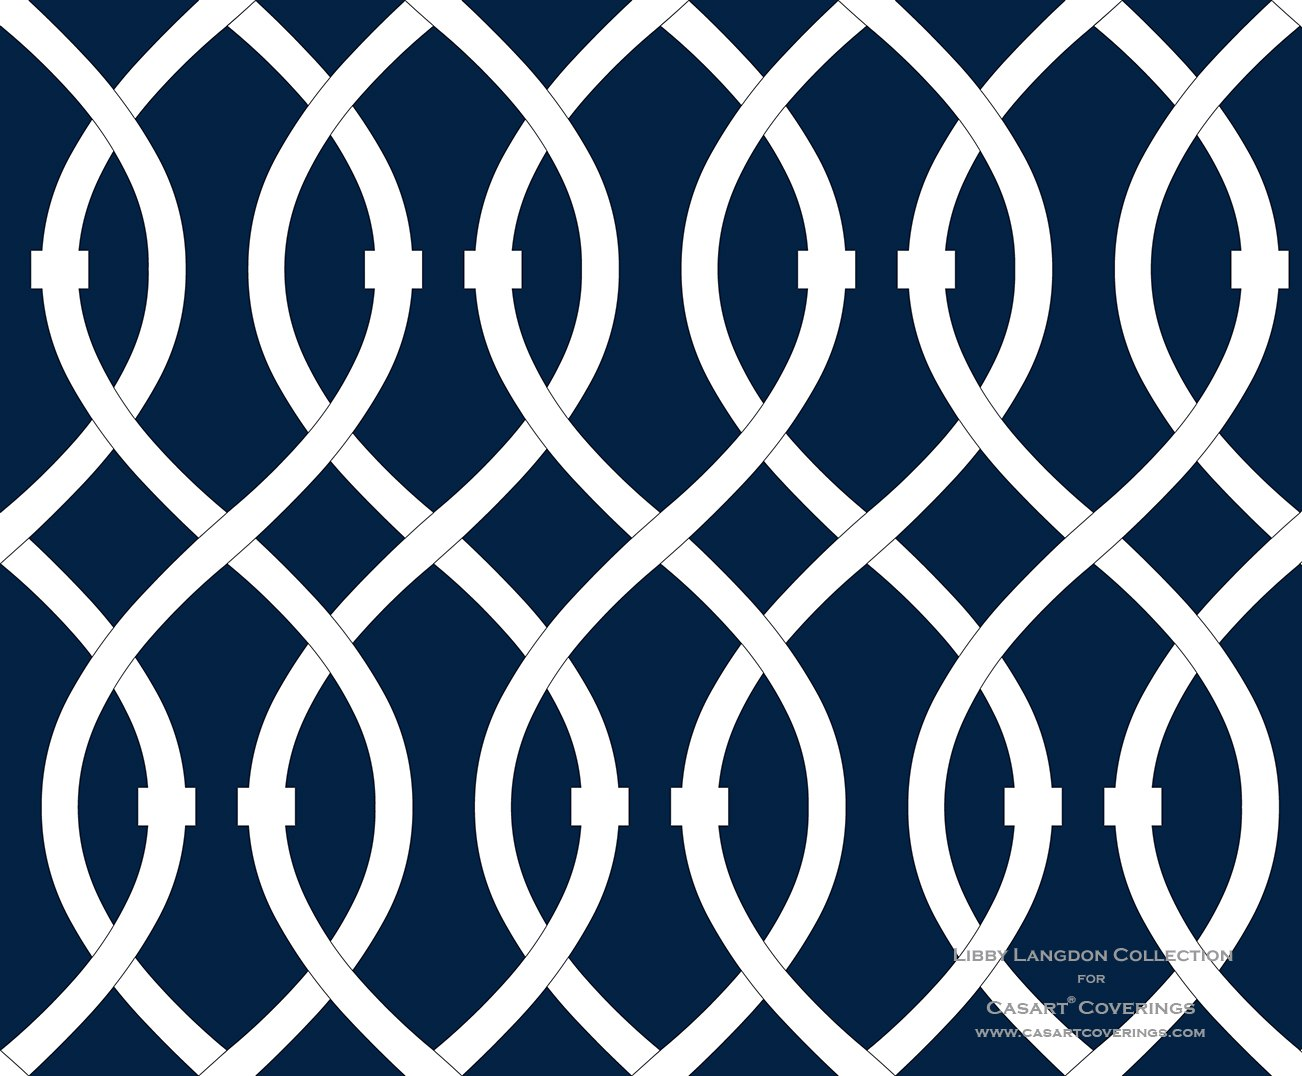 Libby Langdon Lively Lattice in Midnight Navy for Casart coverings